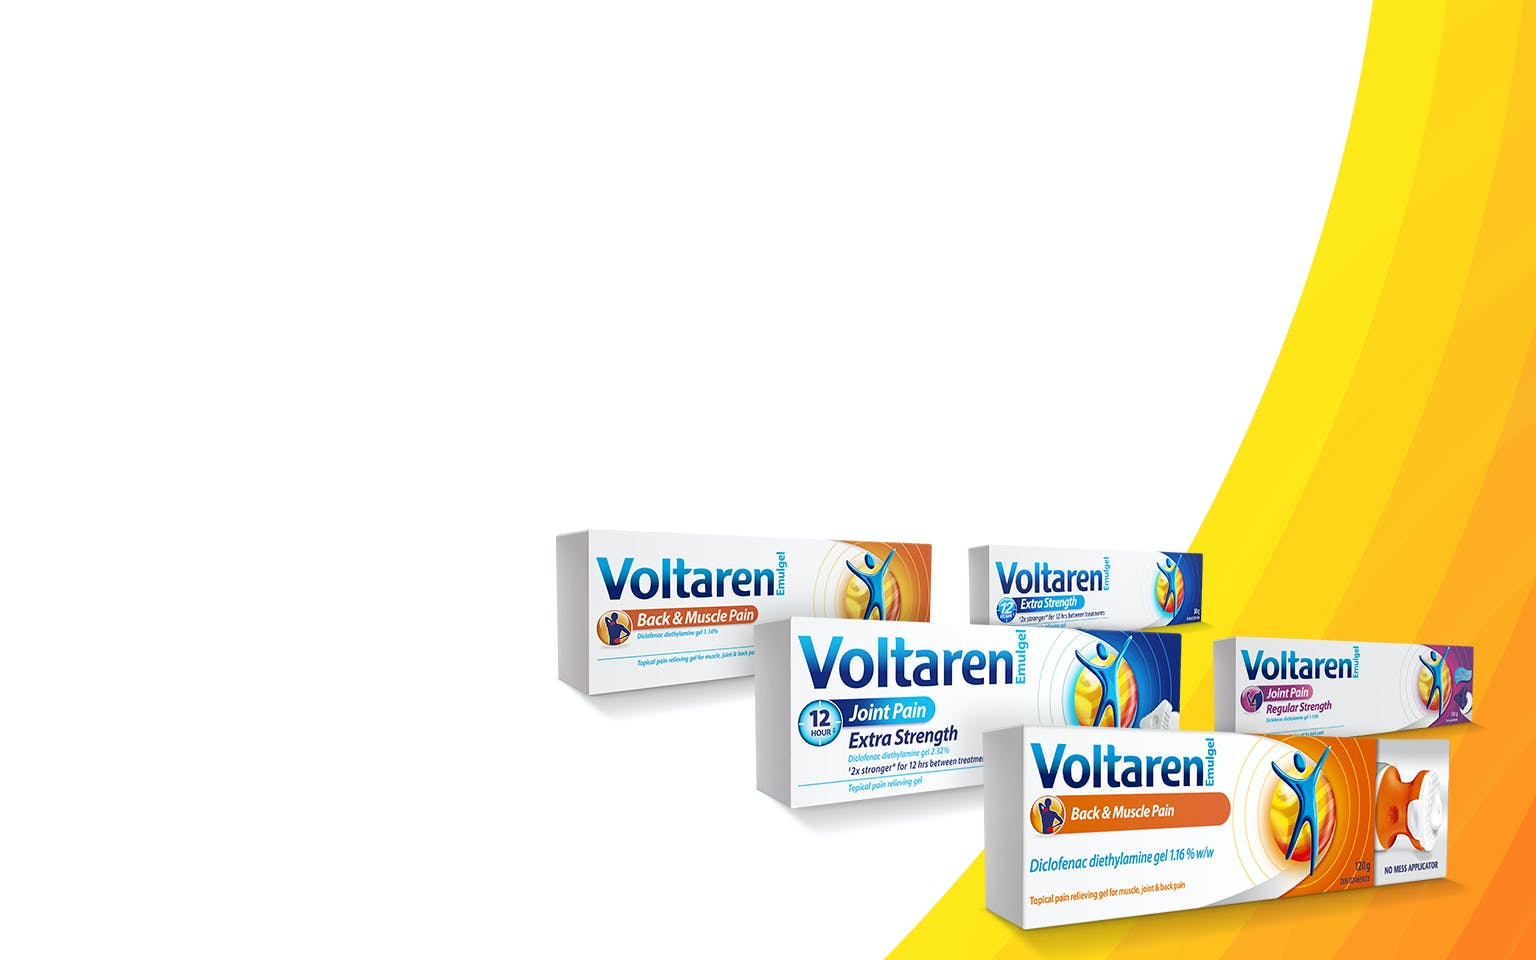 Three boxes of Voltaren Emulgel